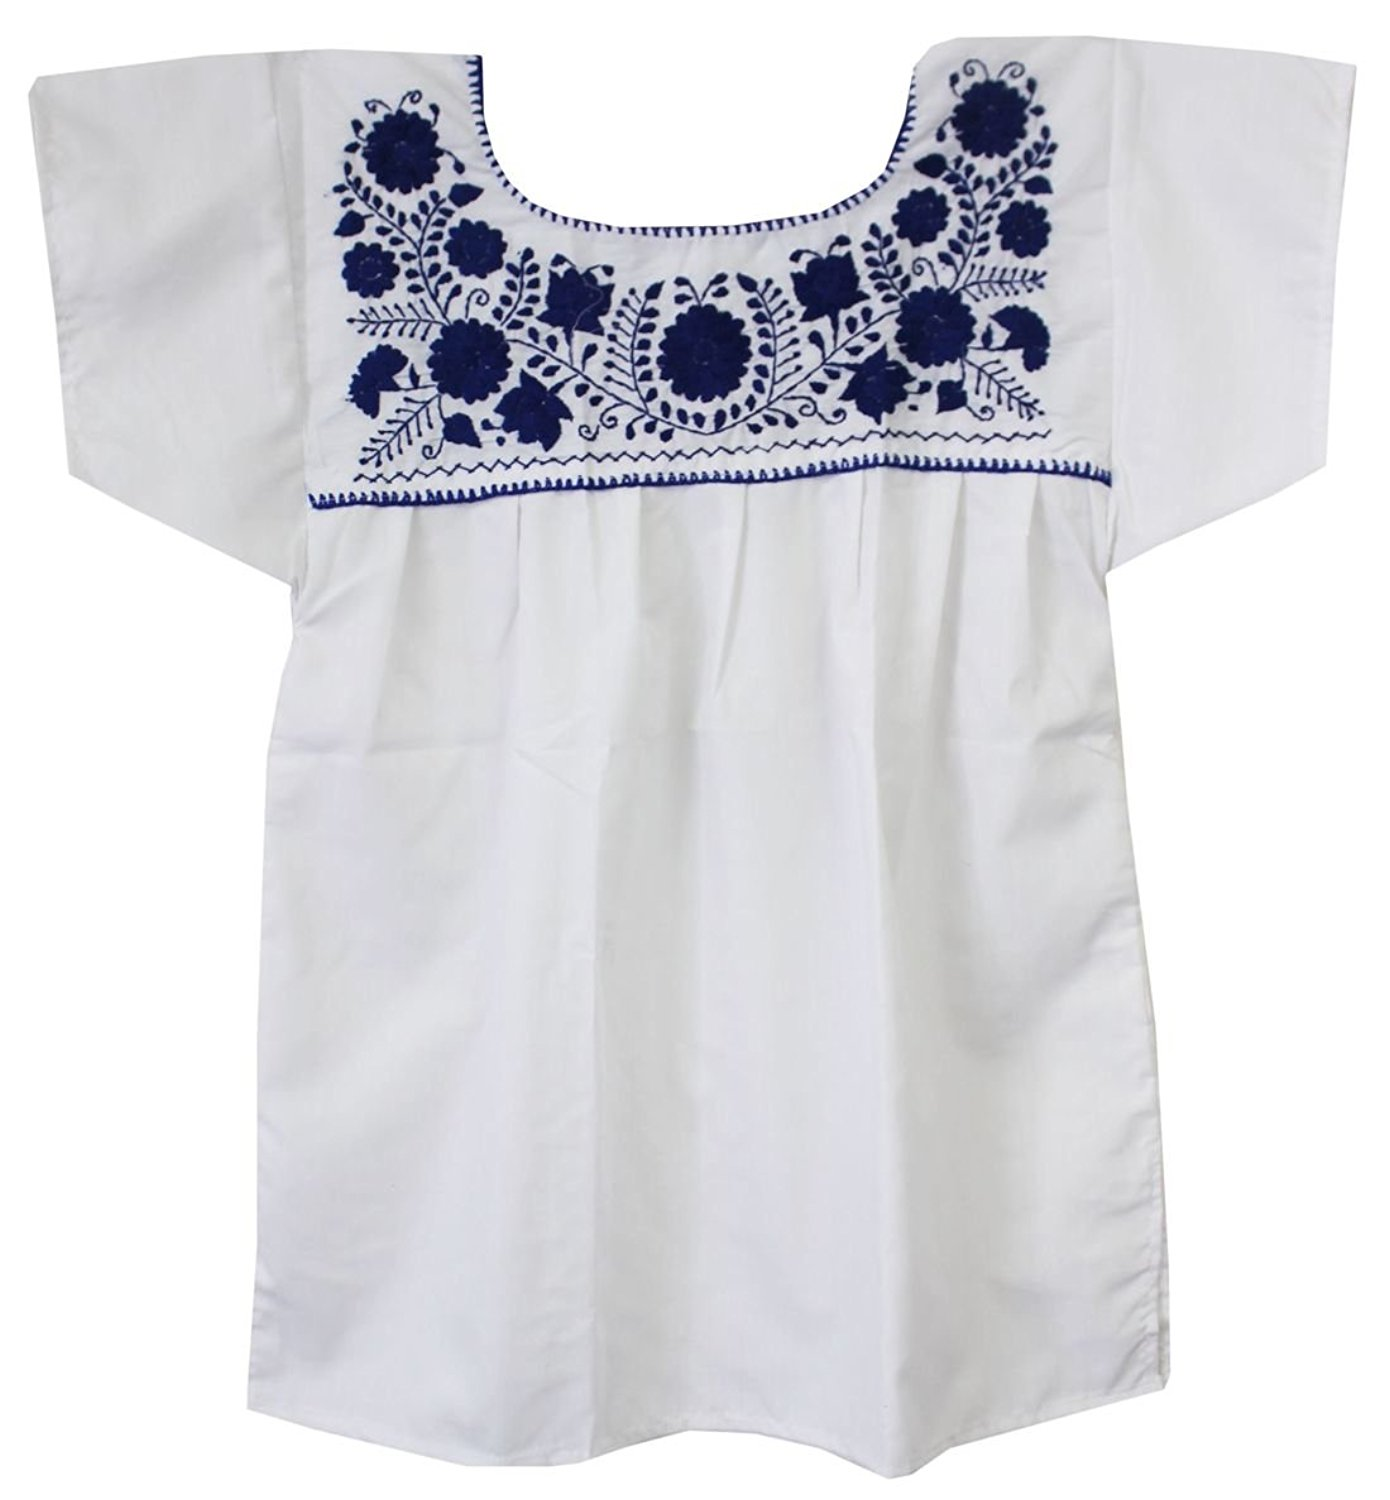 80330c8f19a85 Liliana Cruz Embroidered White Peasant Blouse with Solid Color Embroidery